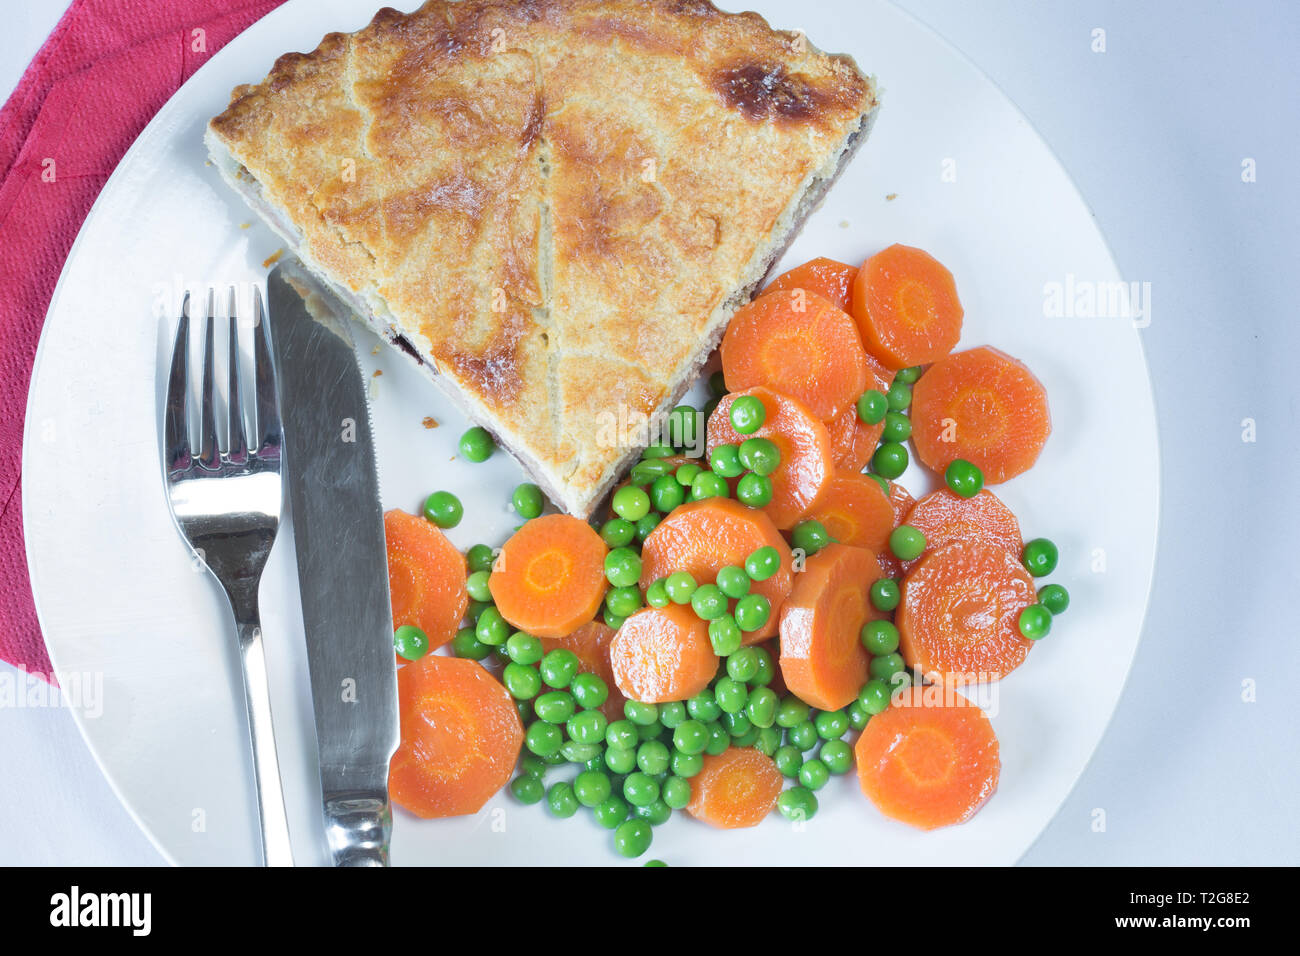 Meat and potato pie with garden peas and carrots - Stock Image